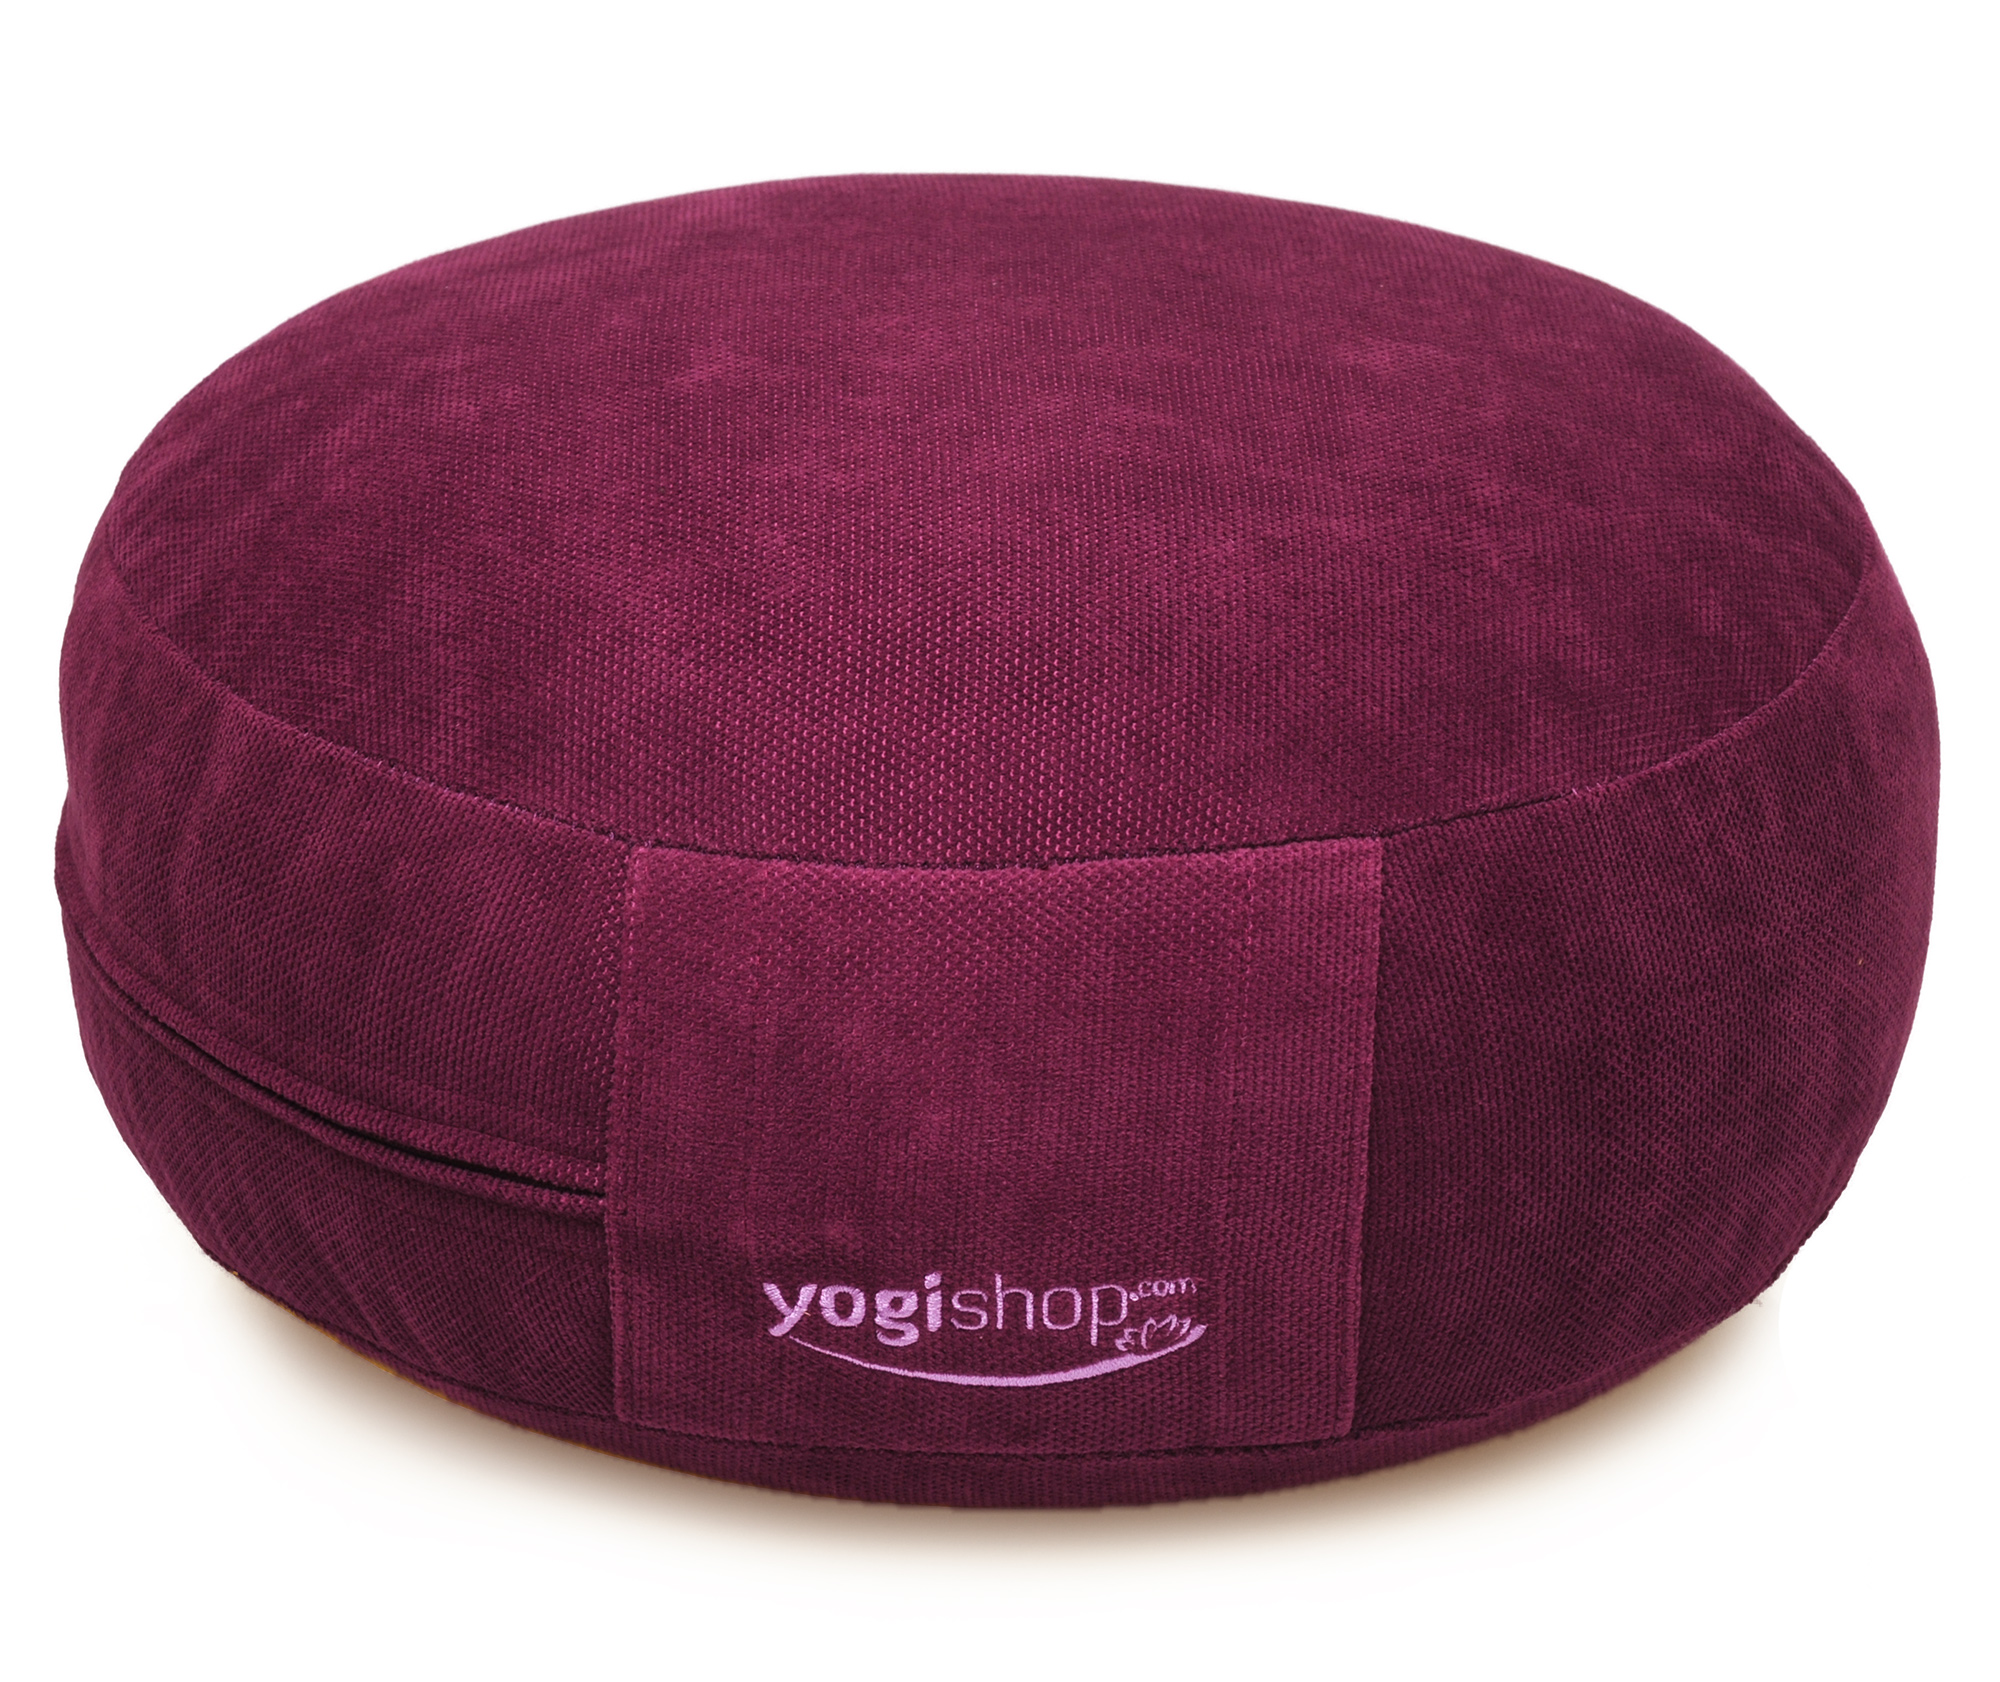 mats and products yoga bolster cushion divine shop zafu accessories img meditation filling buckwheat collections with